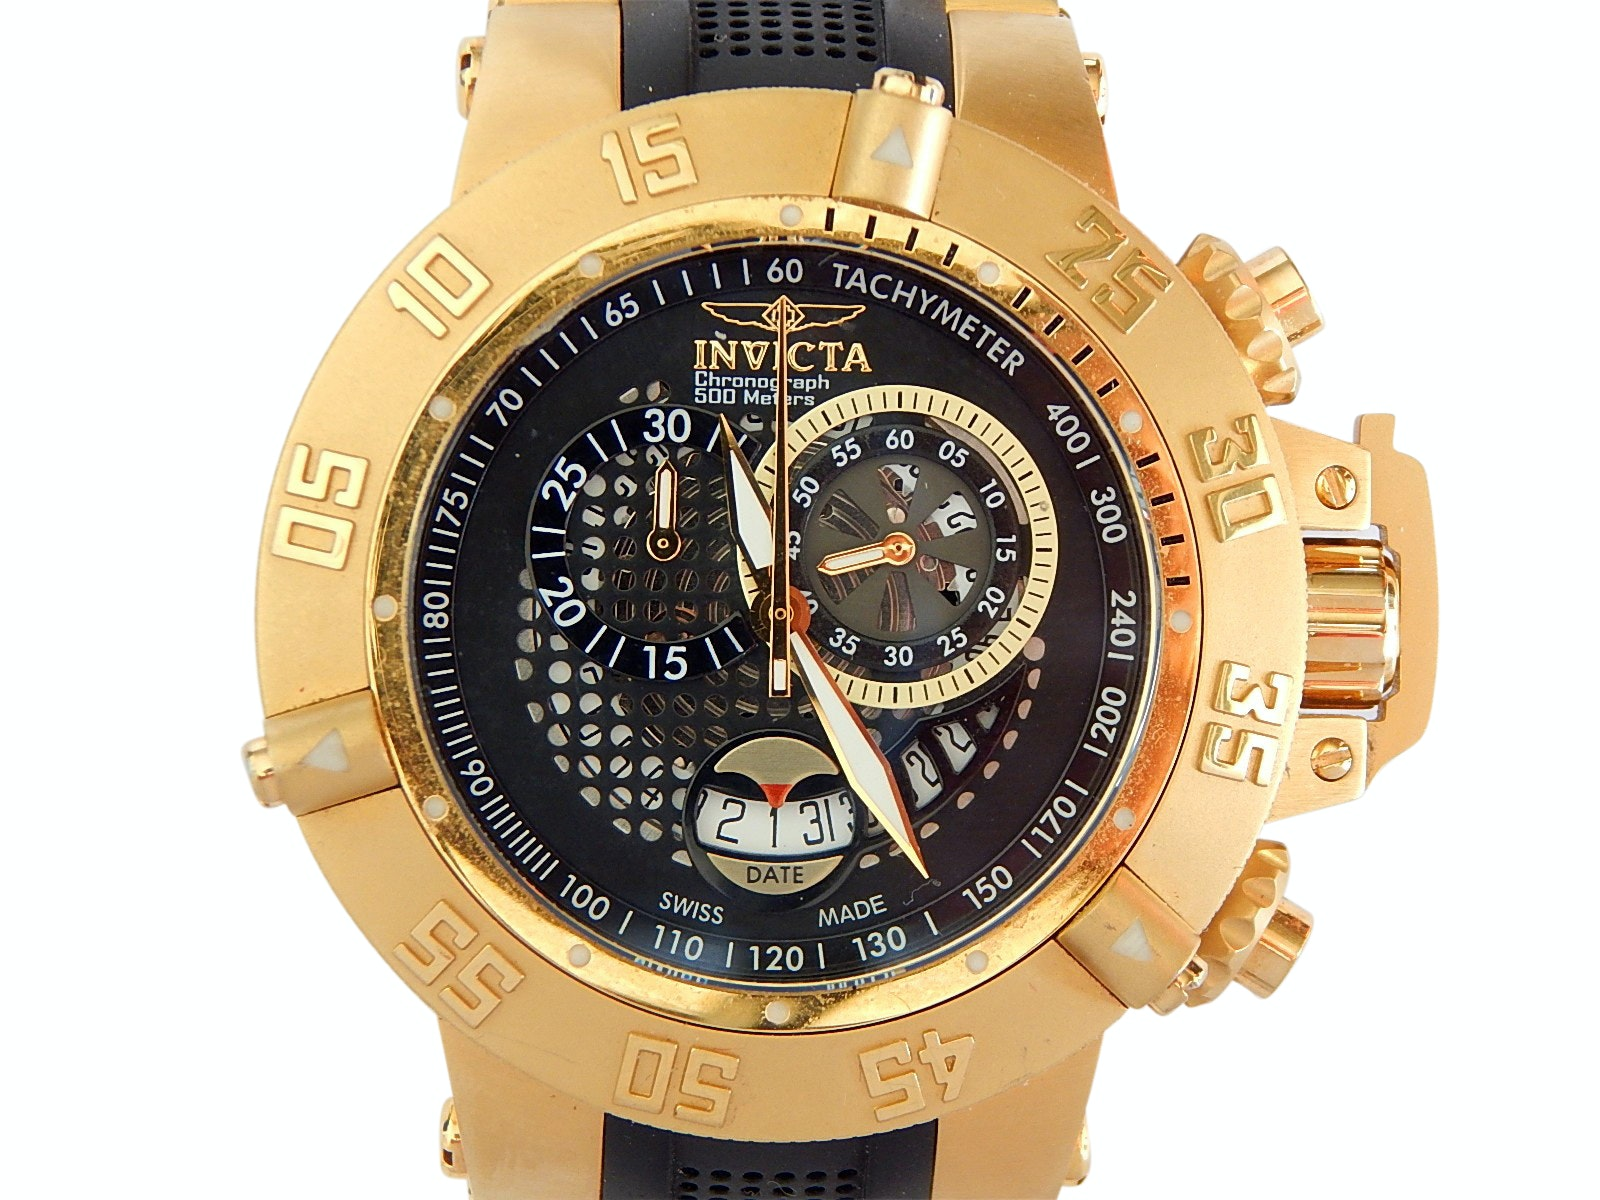 Invicta Gold-Tone Chronograph Swiss Made Subaqua Noma III Wristwatch